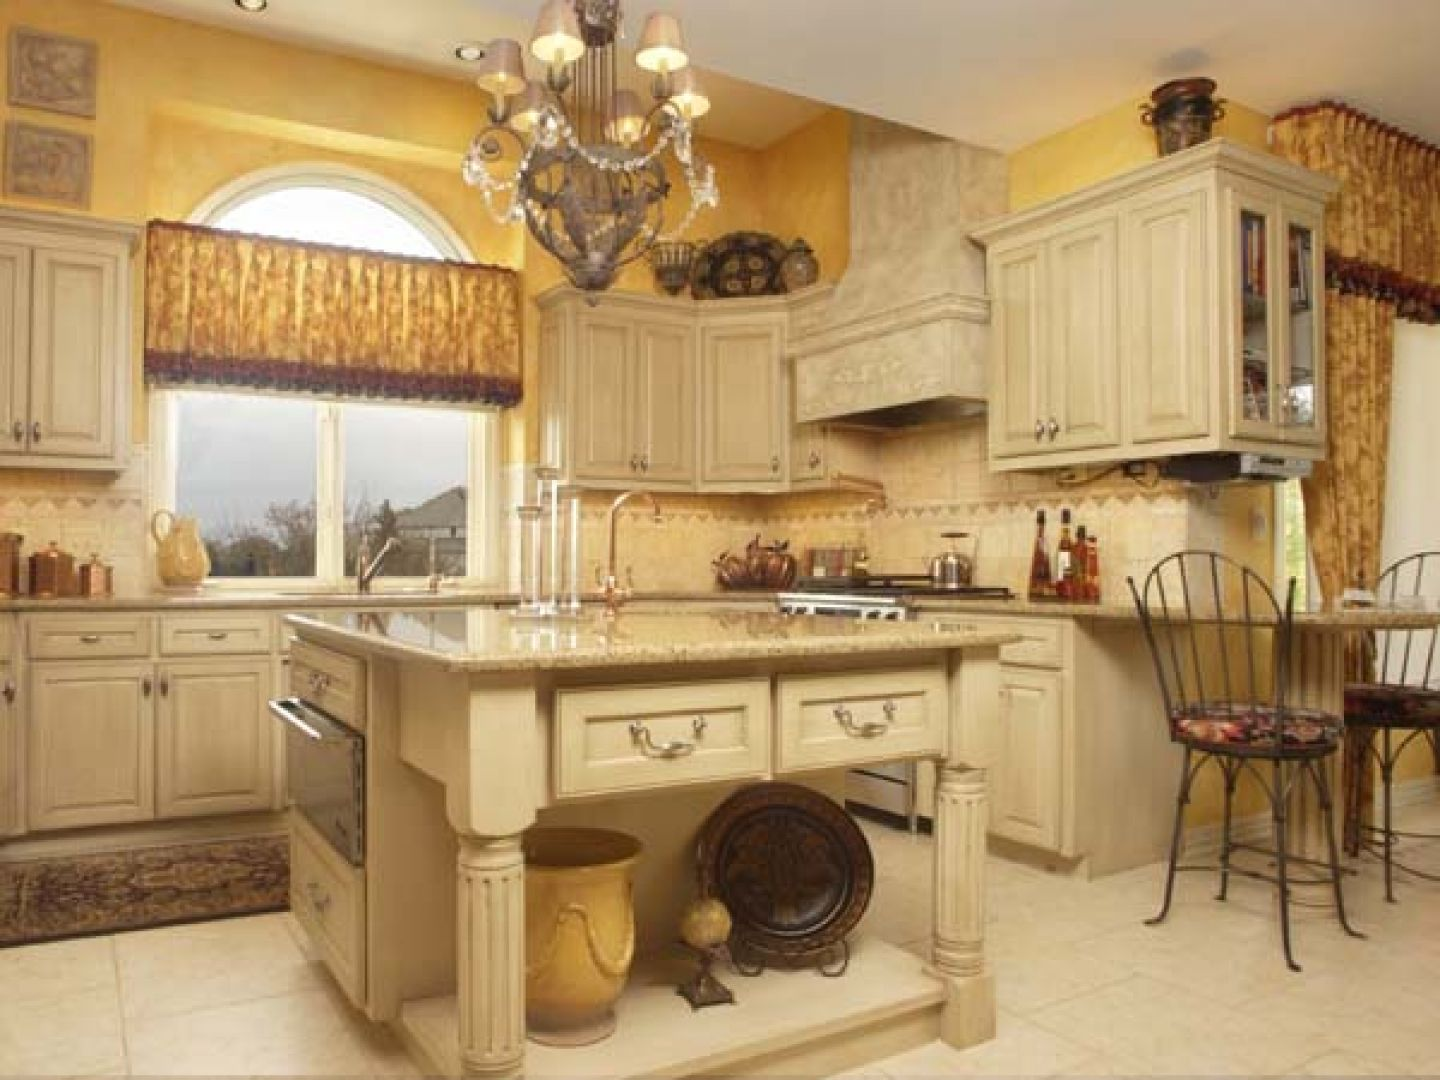 tuscany kitchen would change wall color with cabinets this light tuscan mediterranean. Black Bedroom Furniture Sets. Home Design Ideas